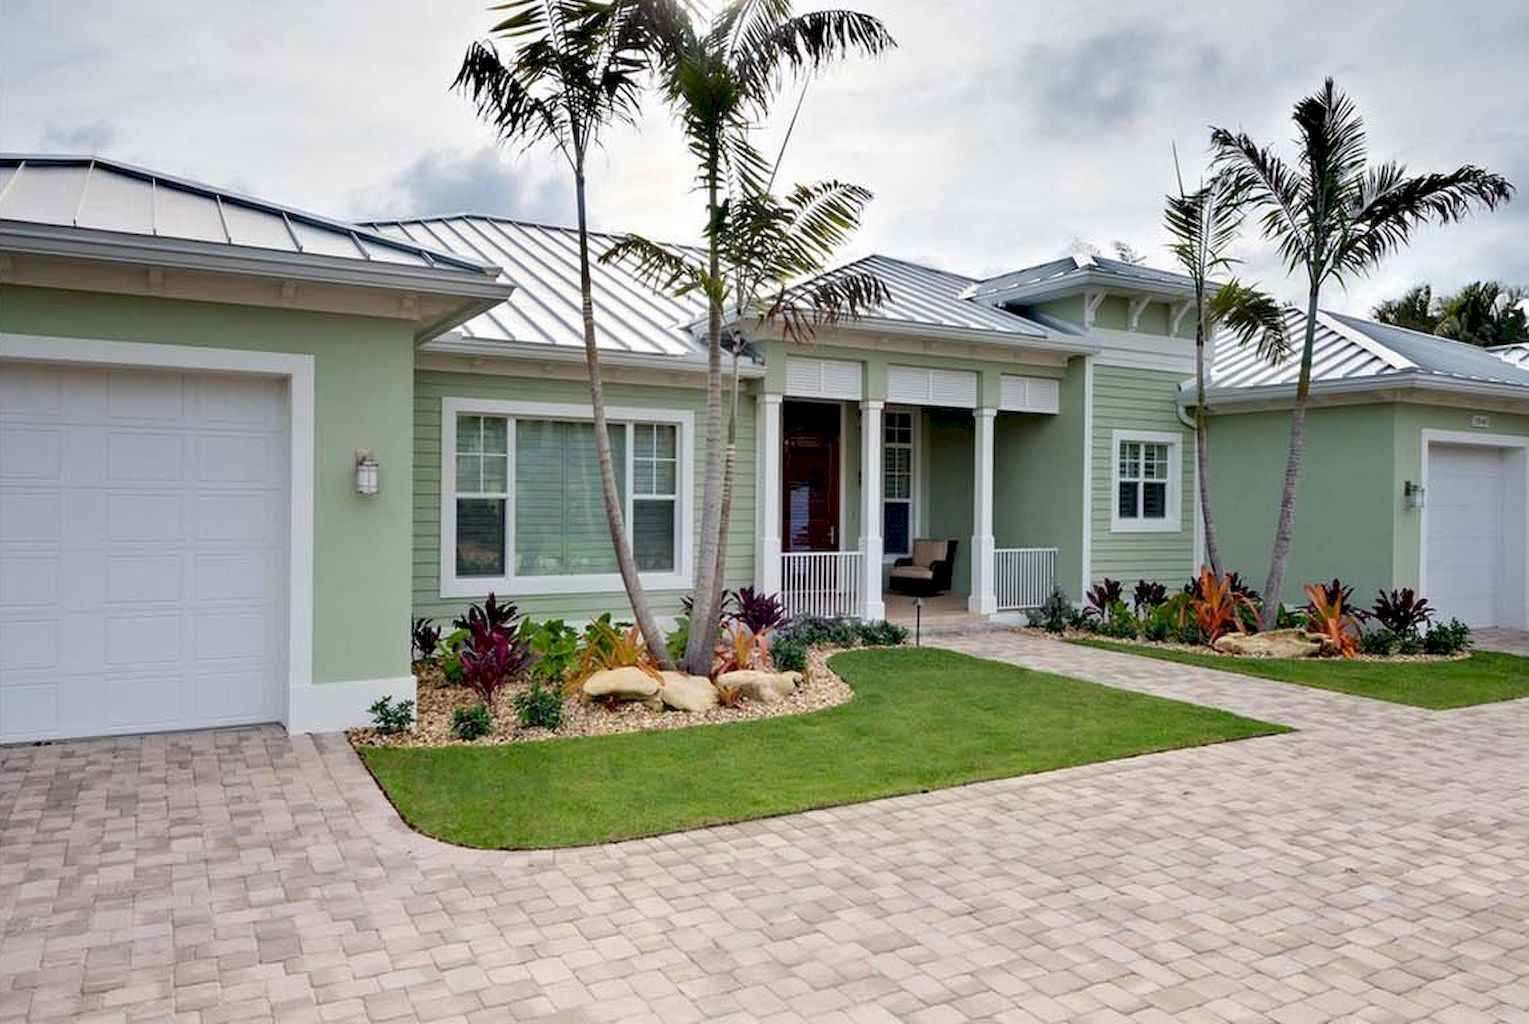 35 Beautiful Frontyard Landscaping Design Ideas and Remodel (11)